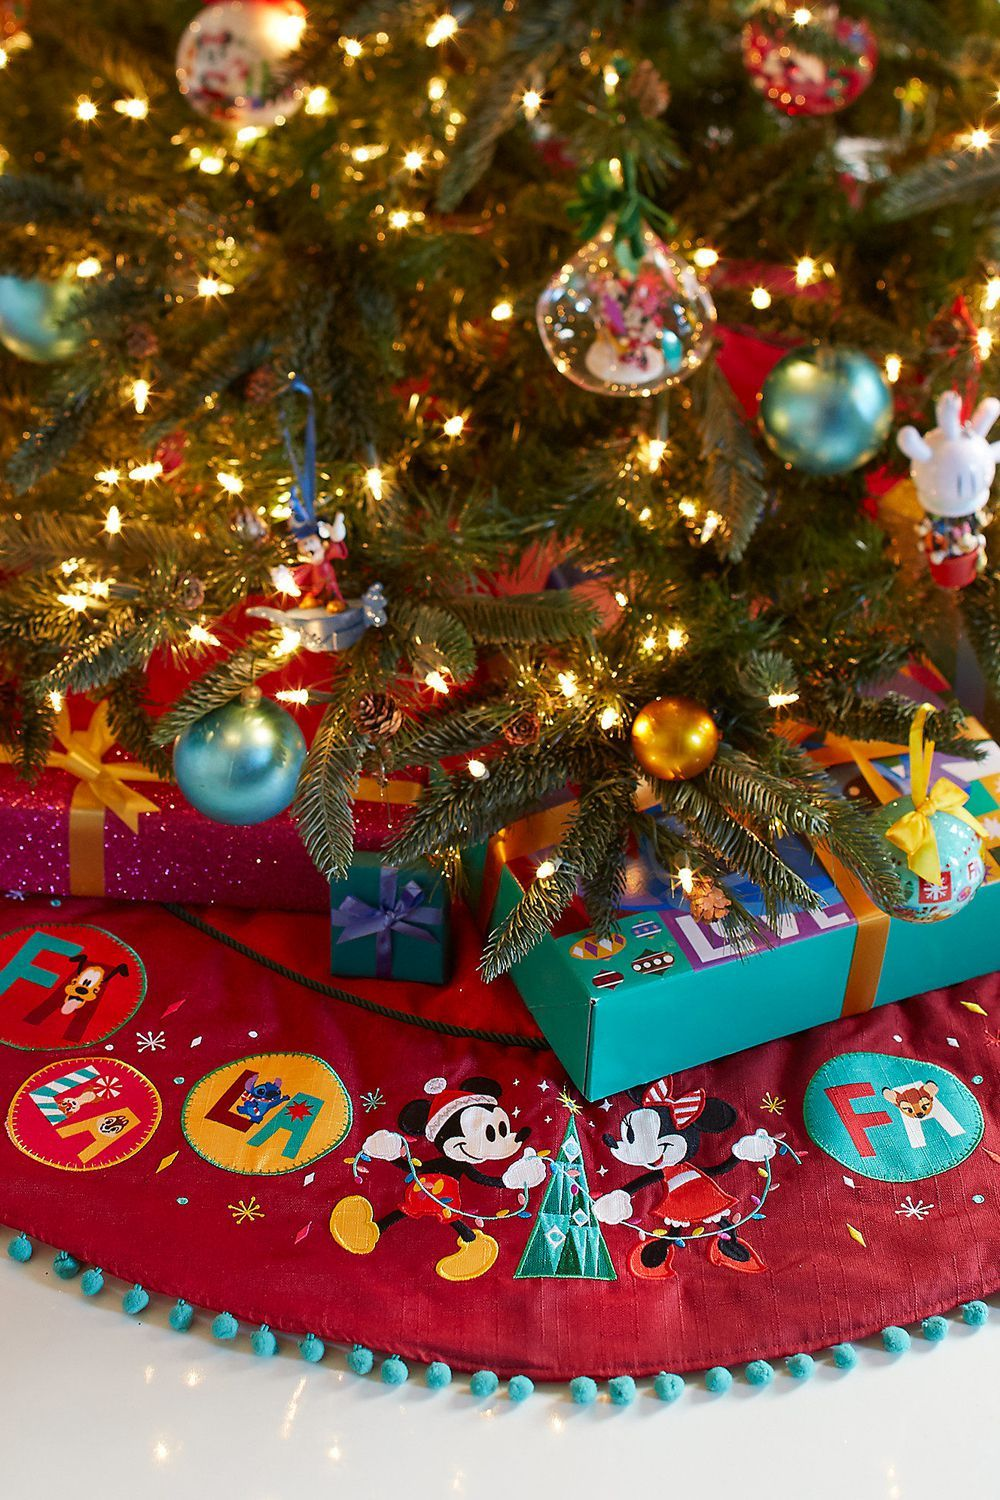 Disney Christmas Decorations.Mickey And Minnie Mouse Holiday Tree Skirt